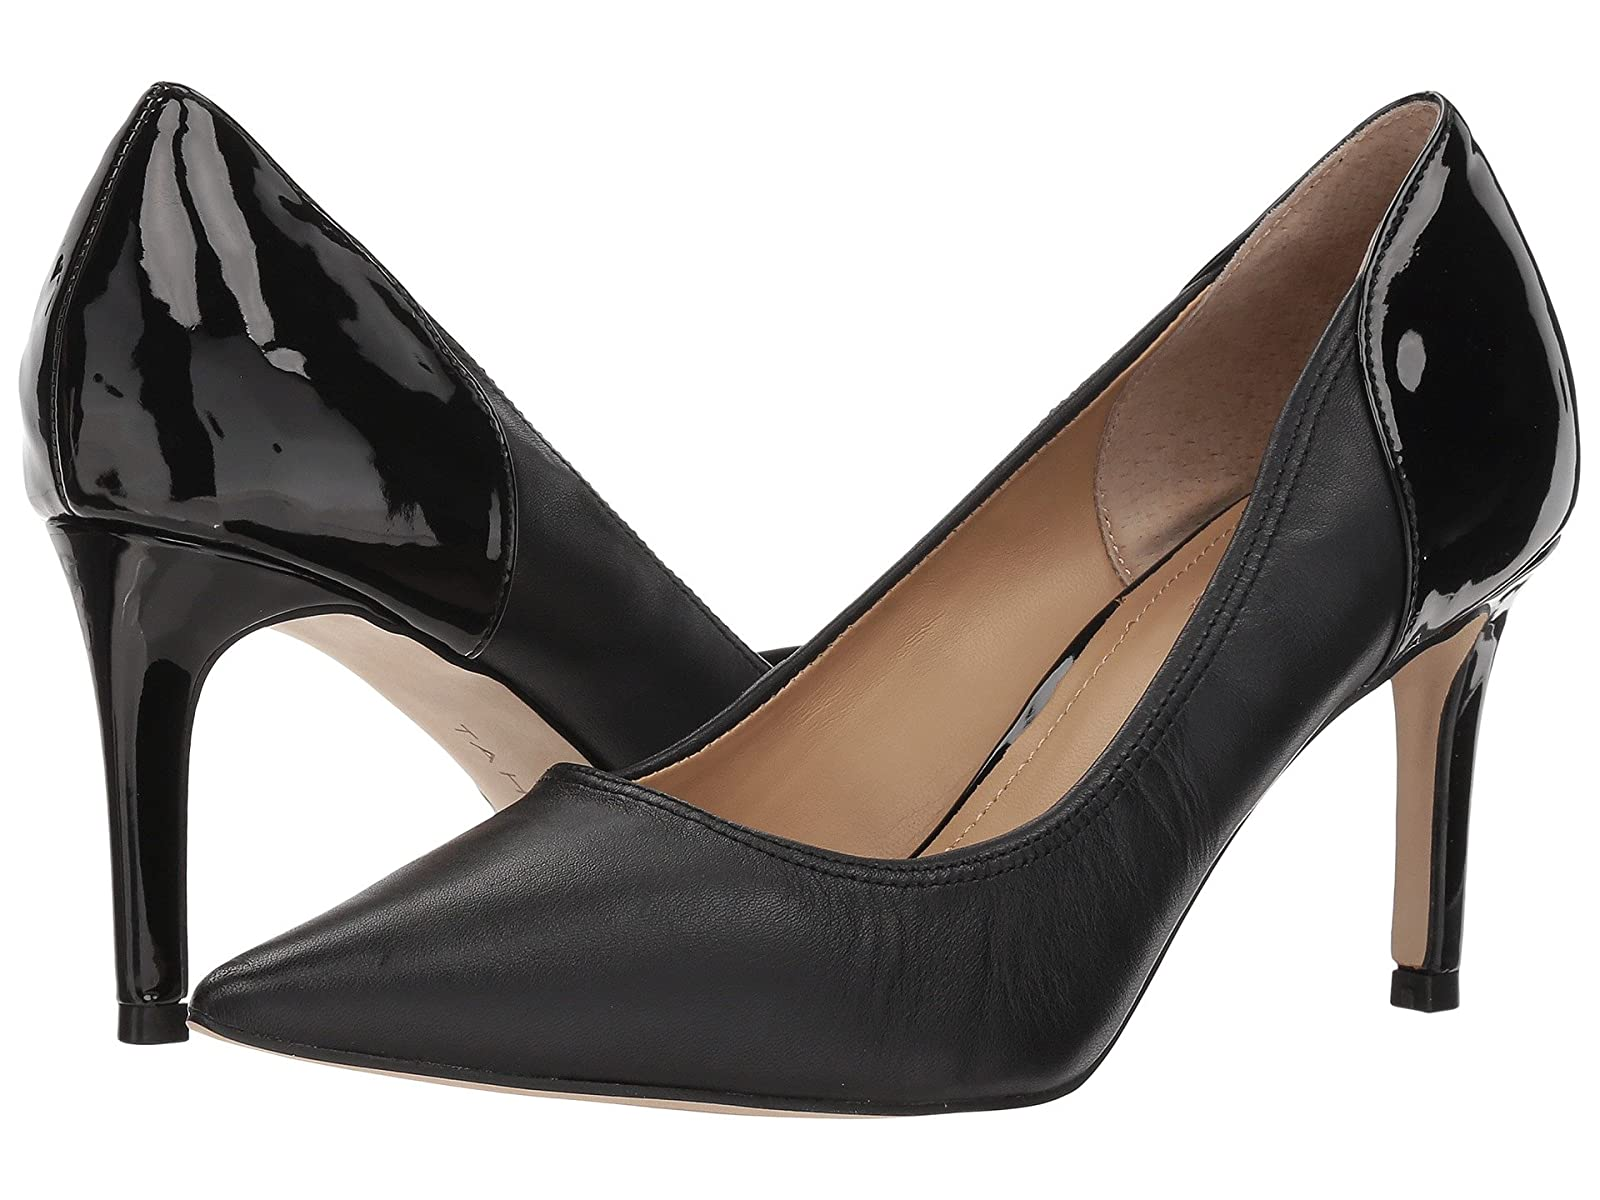 Tahari ParsonCheap and distinctive eye-catching shoes